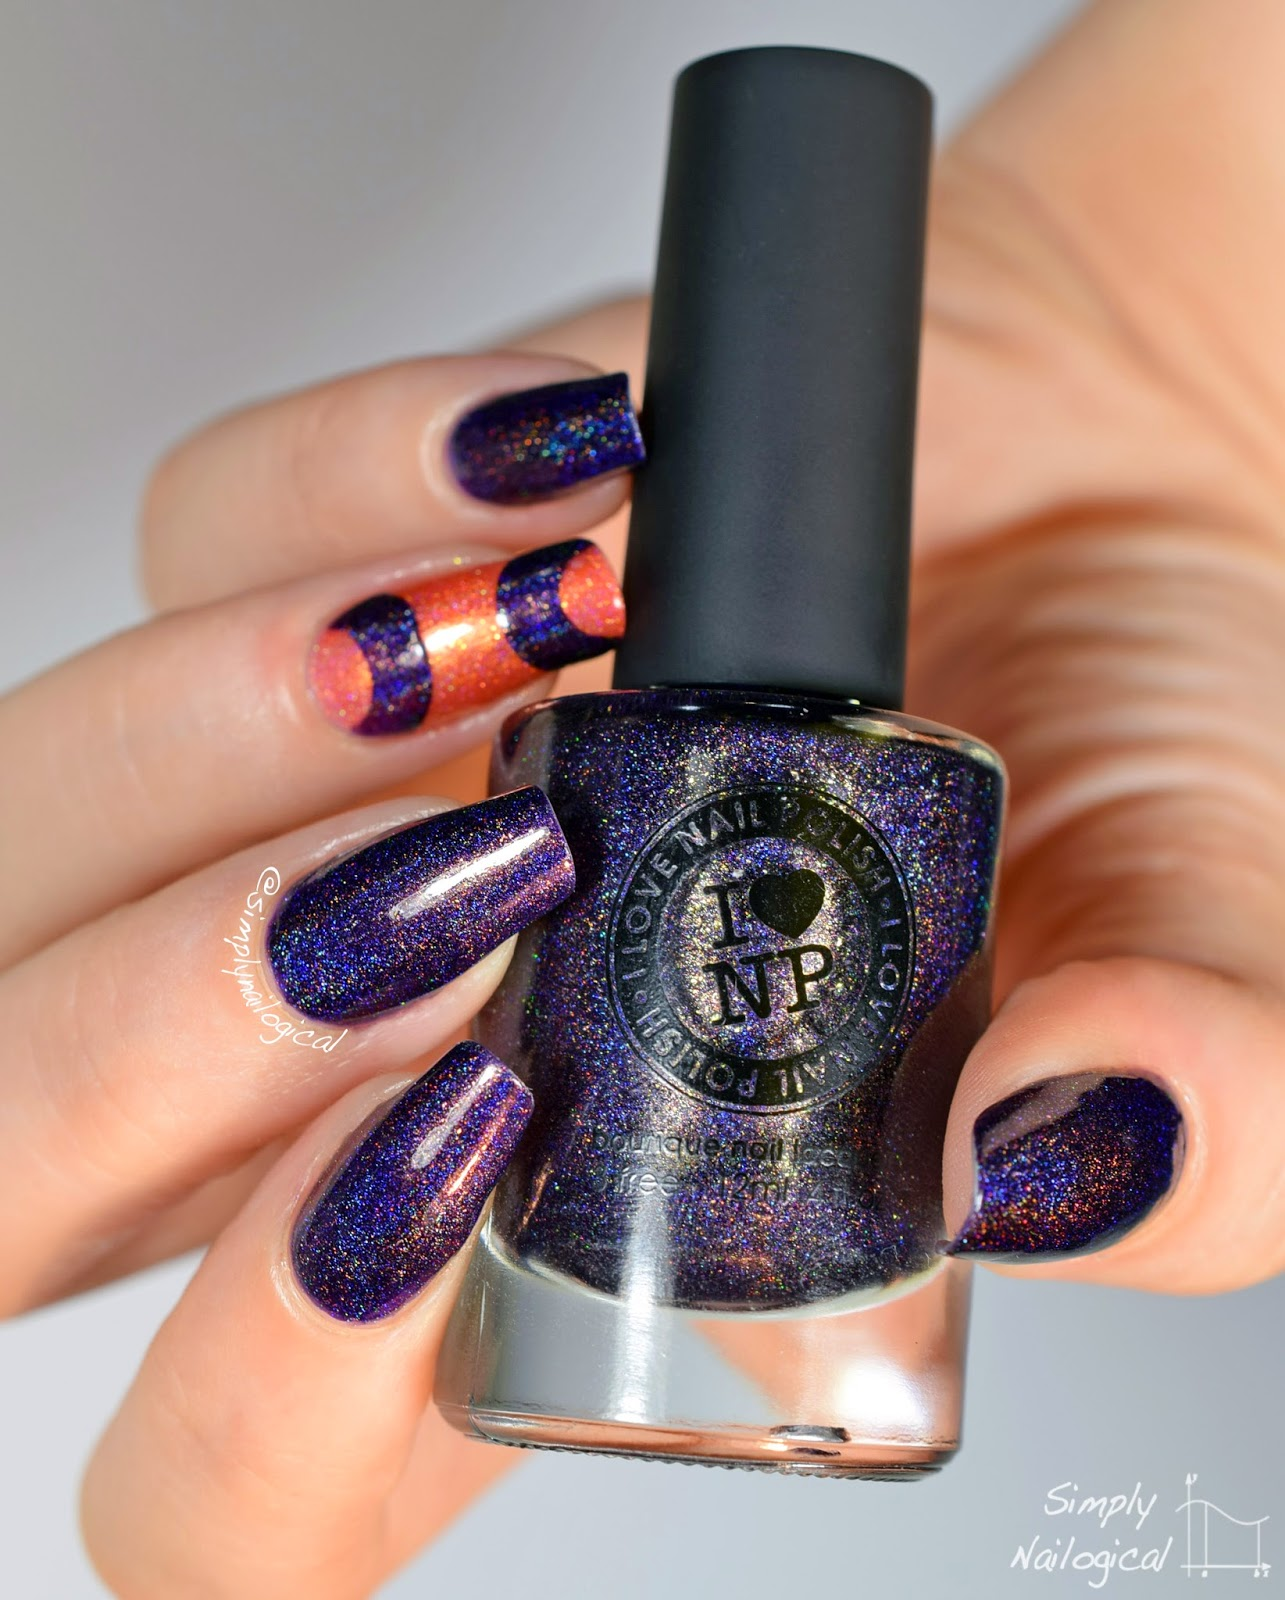 Homecoming - ILNP Fall 2014 collection